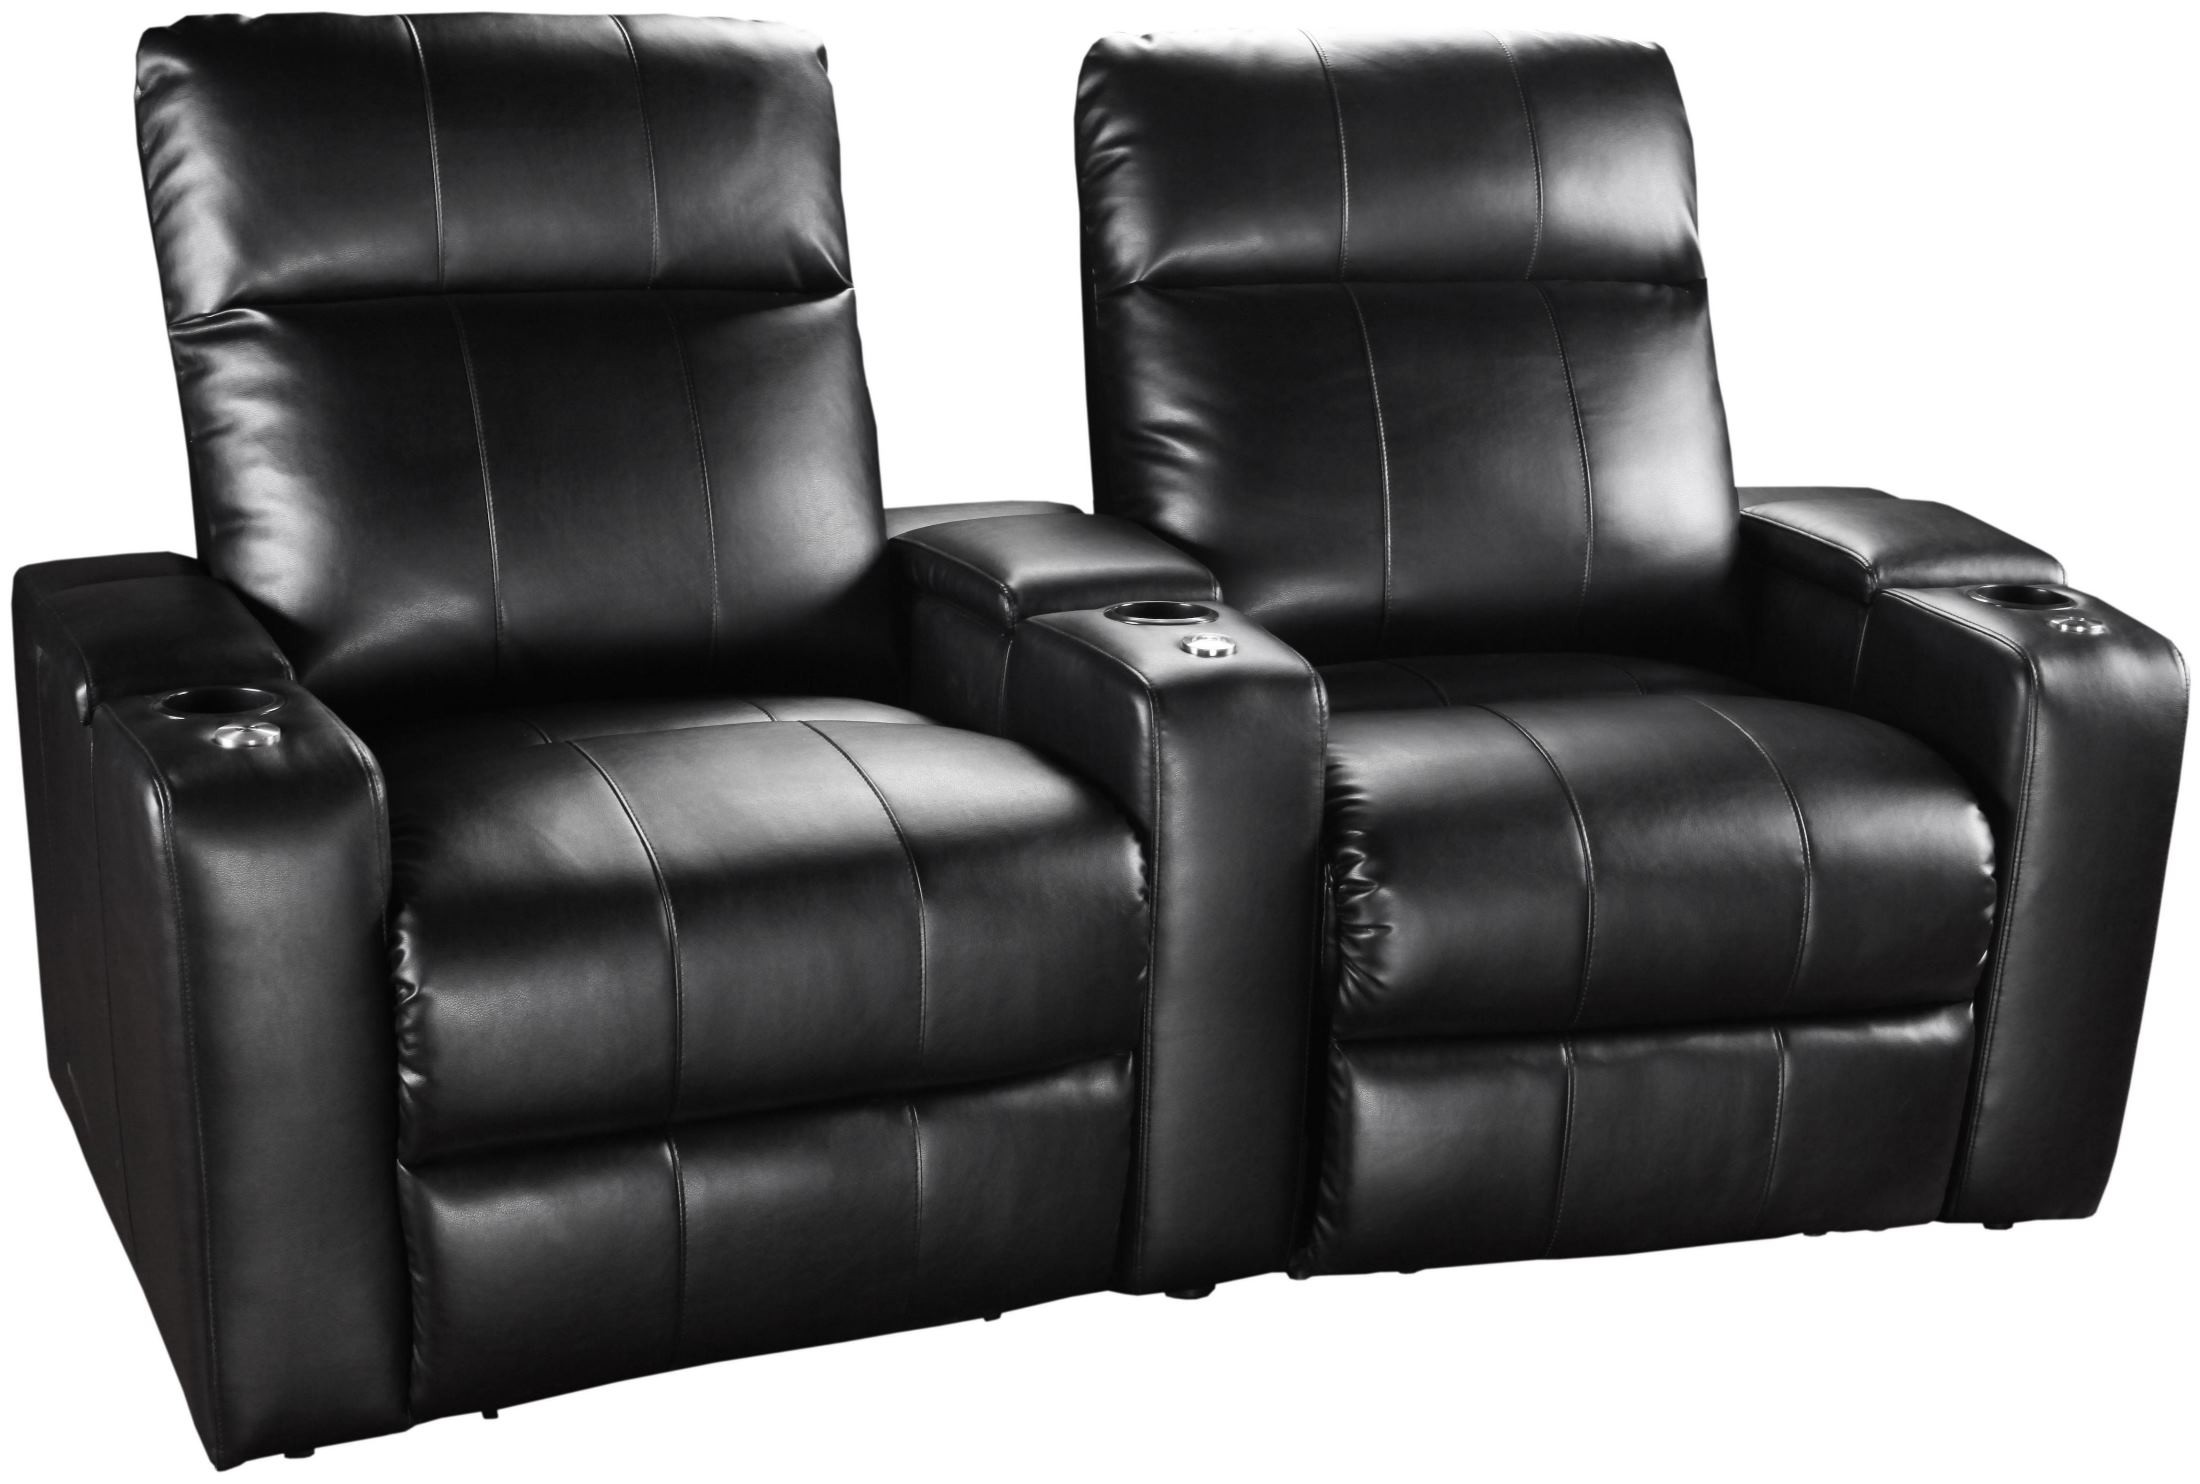 Plaza Black Bonded Leather Power Reclining Curved 2 Seats Home Theater Seatin